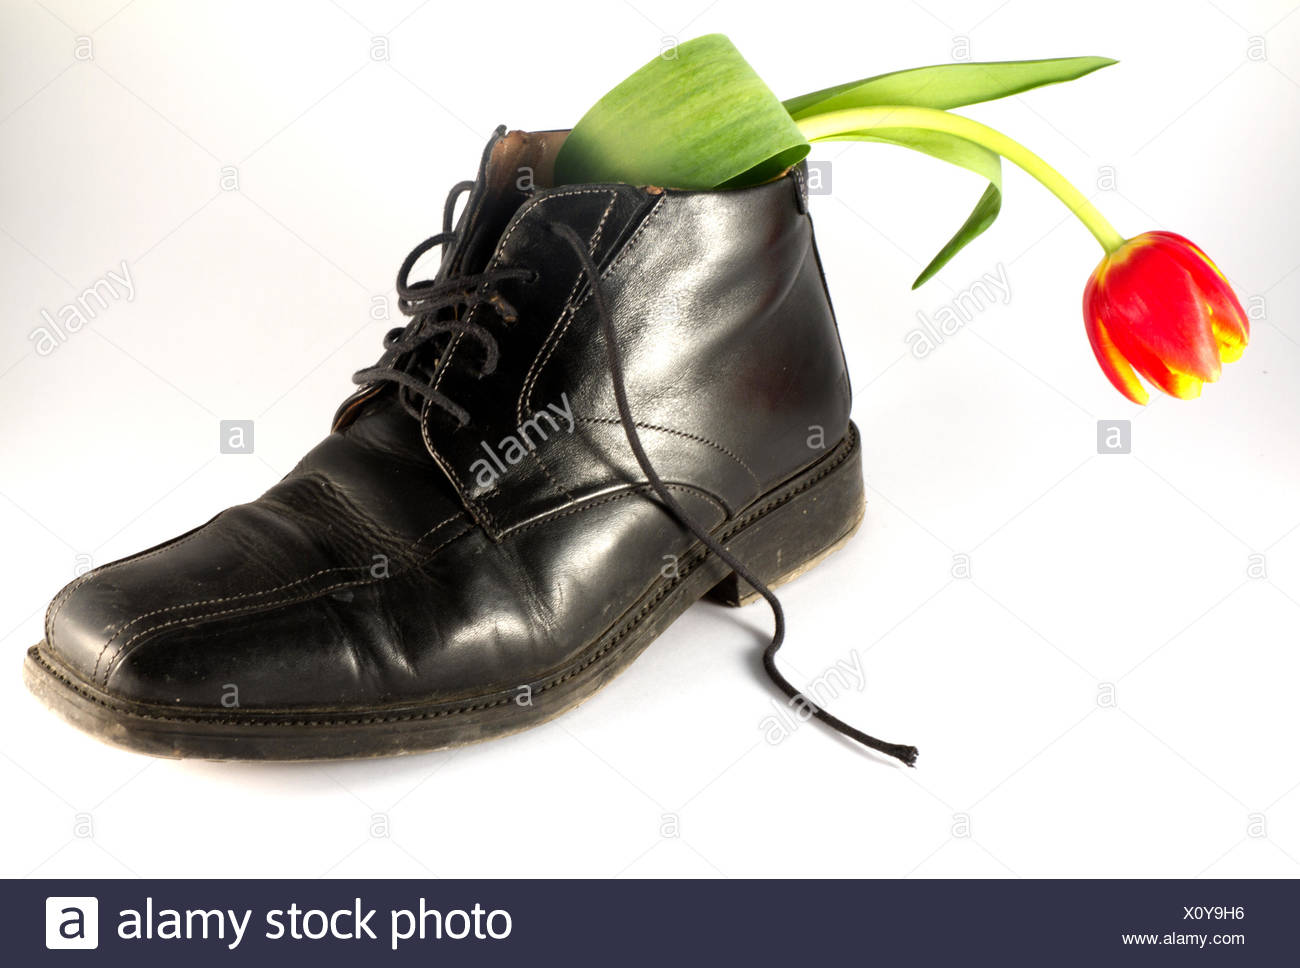 still life flower plant tulip abstract shoe still life flower plant tulip - Stock Image